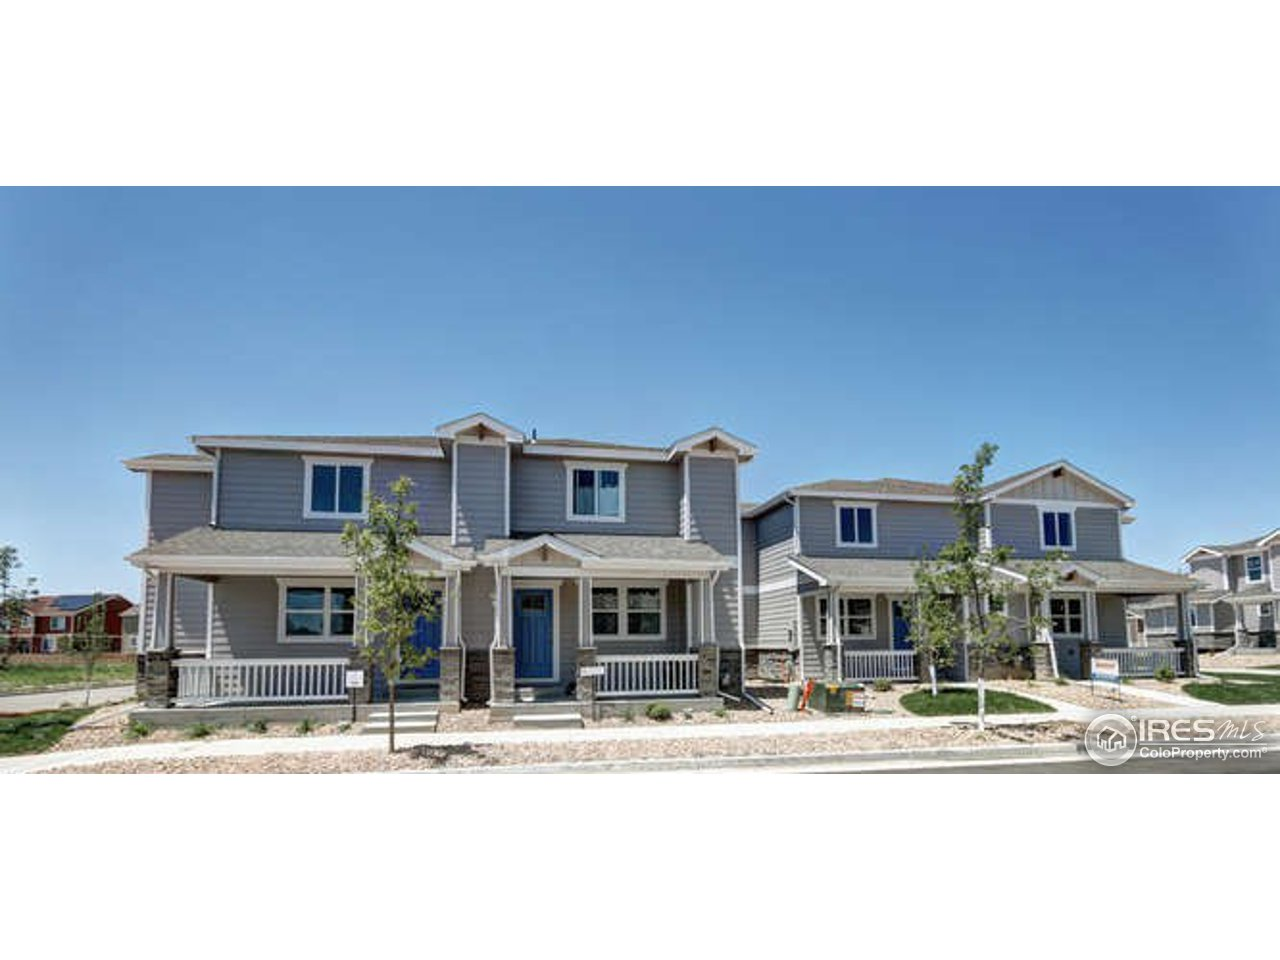 Glasco Park Townhomes is a luxury townhouse development in Wyndham Hill. Low Maintenance living at its finest!! Convenient to Boulder,Denver,and DIA. Granite countertops, tile/wood flooring,  attached garage, unfinished basements ready for expansion, and much more! Many floor plans to choose from including main floor masters. Over $15,000 in upgrades already included. Look for Harmony Brokers Signs. Model is 6107 Kochia #107 open most days.Check the open house link for exact times.